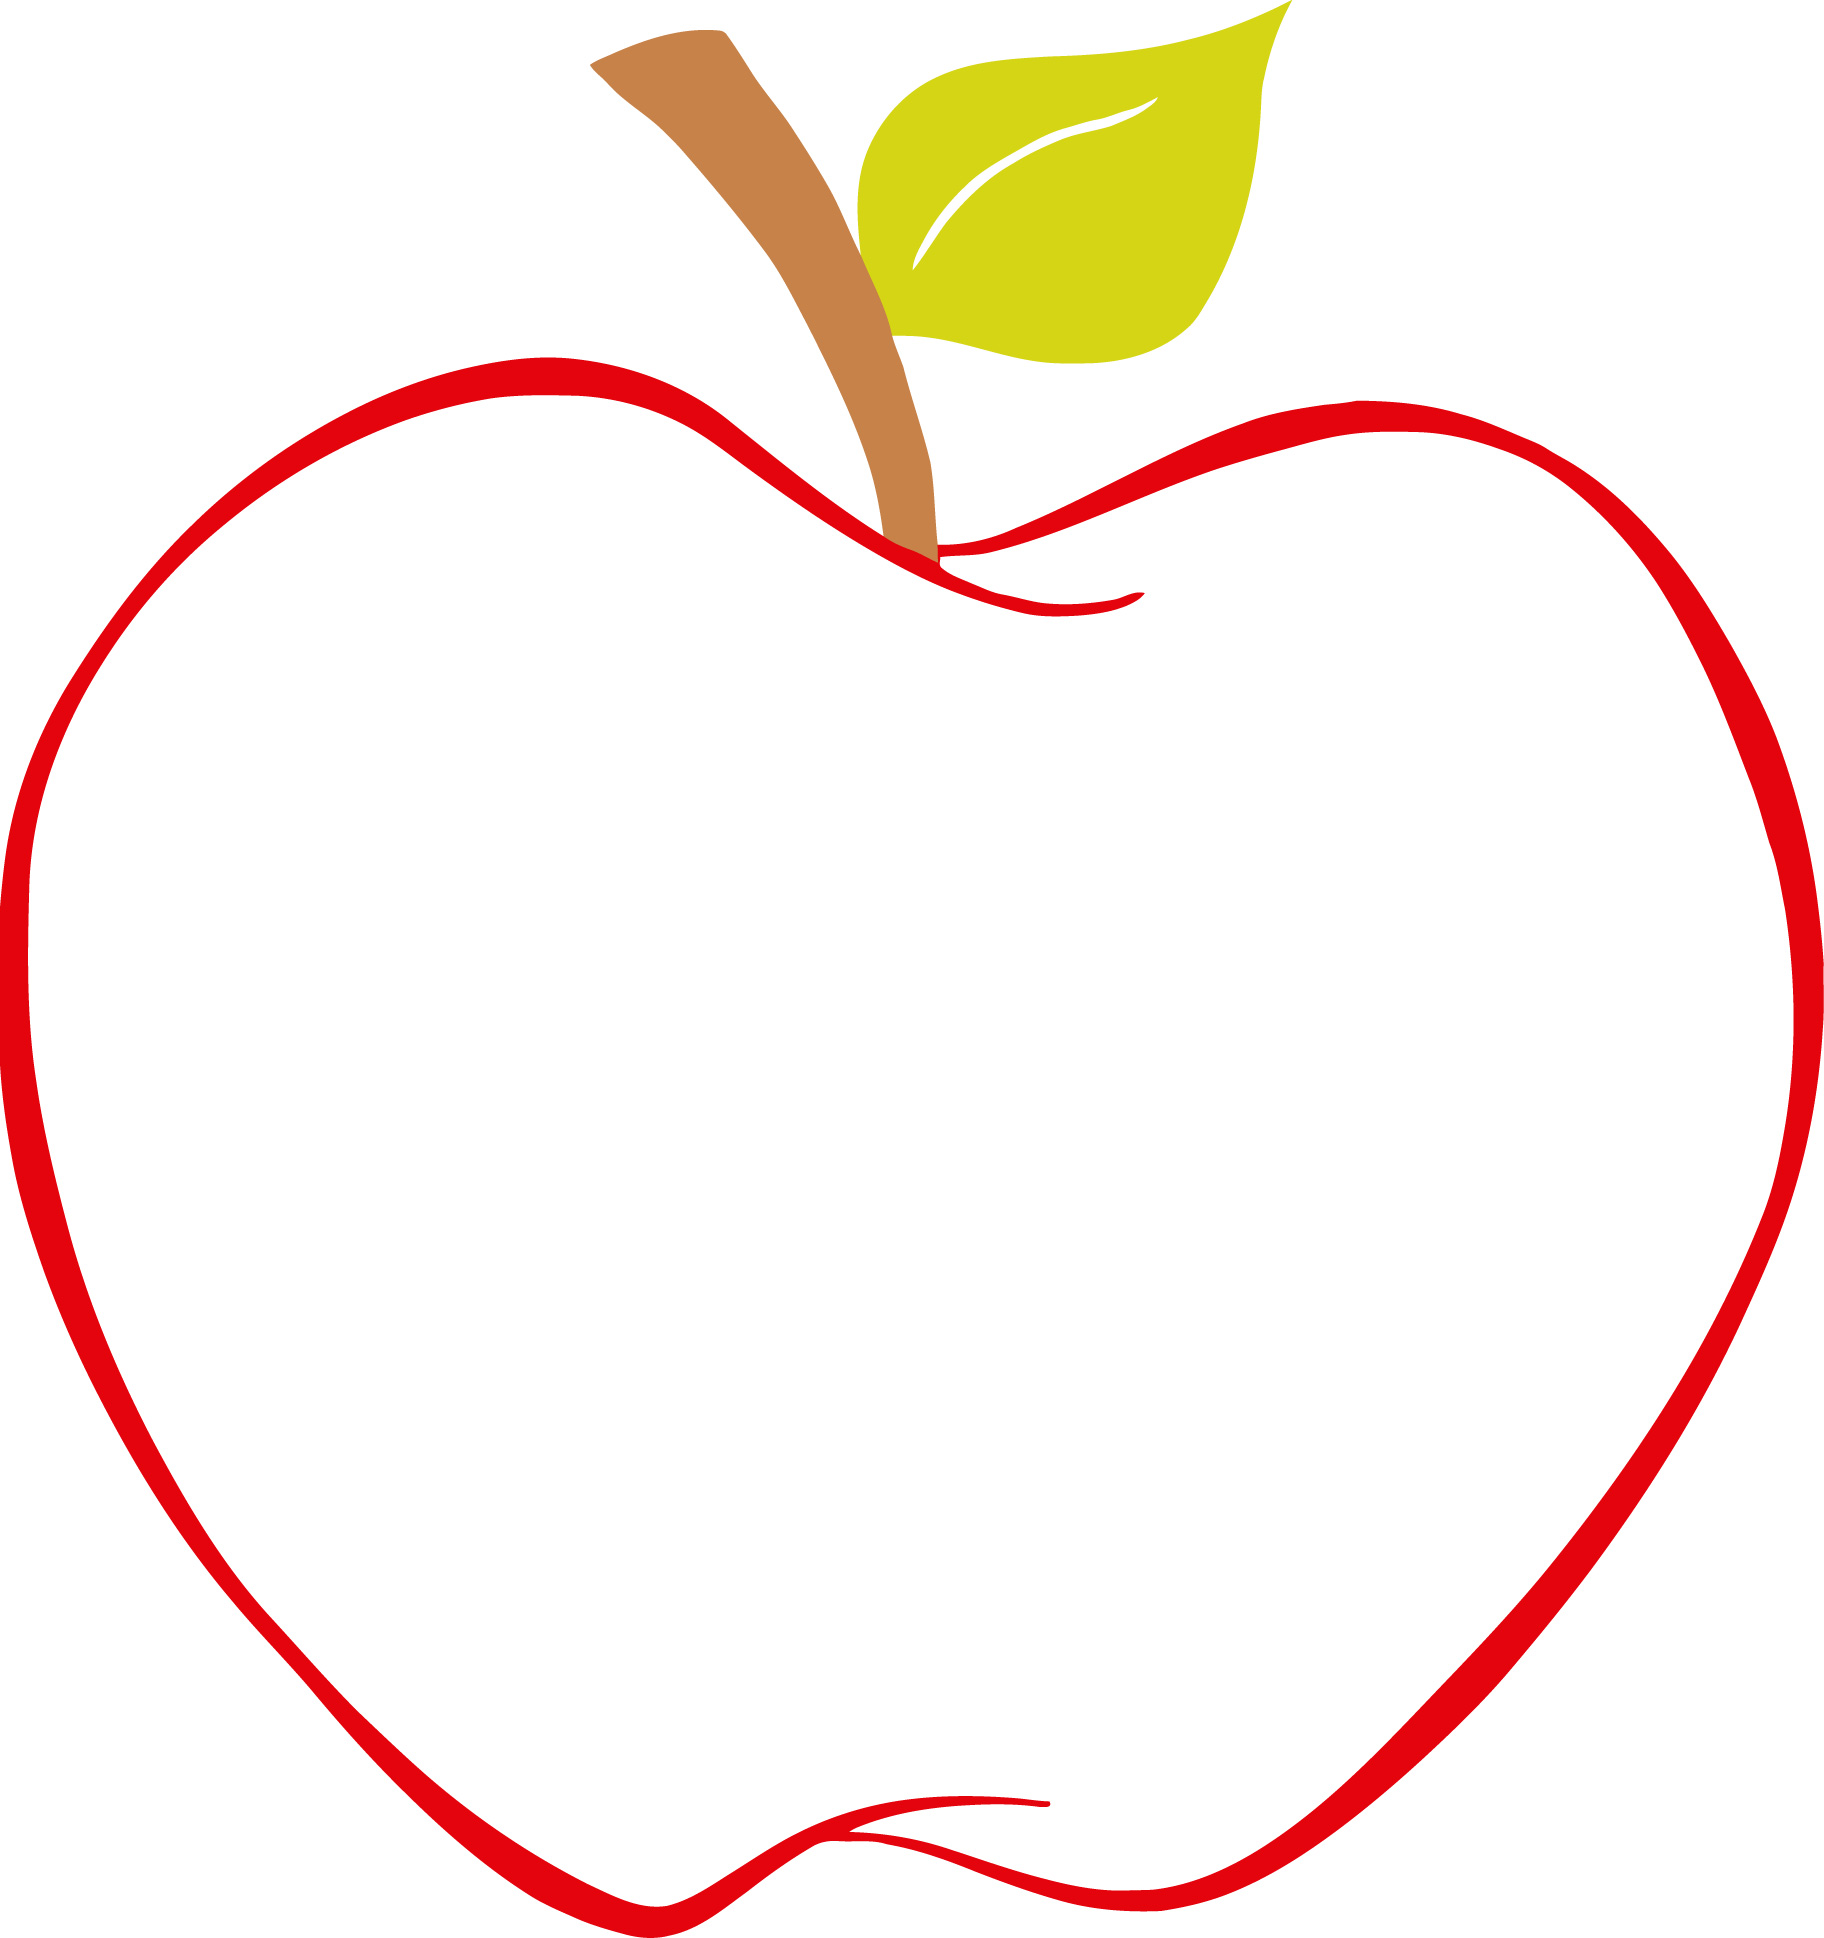 Red Apple Outline - ClipArt Best